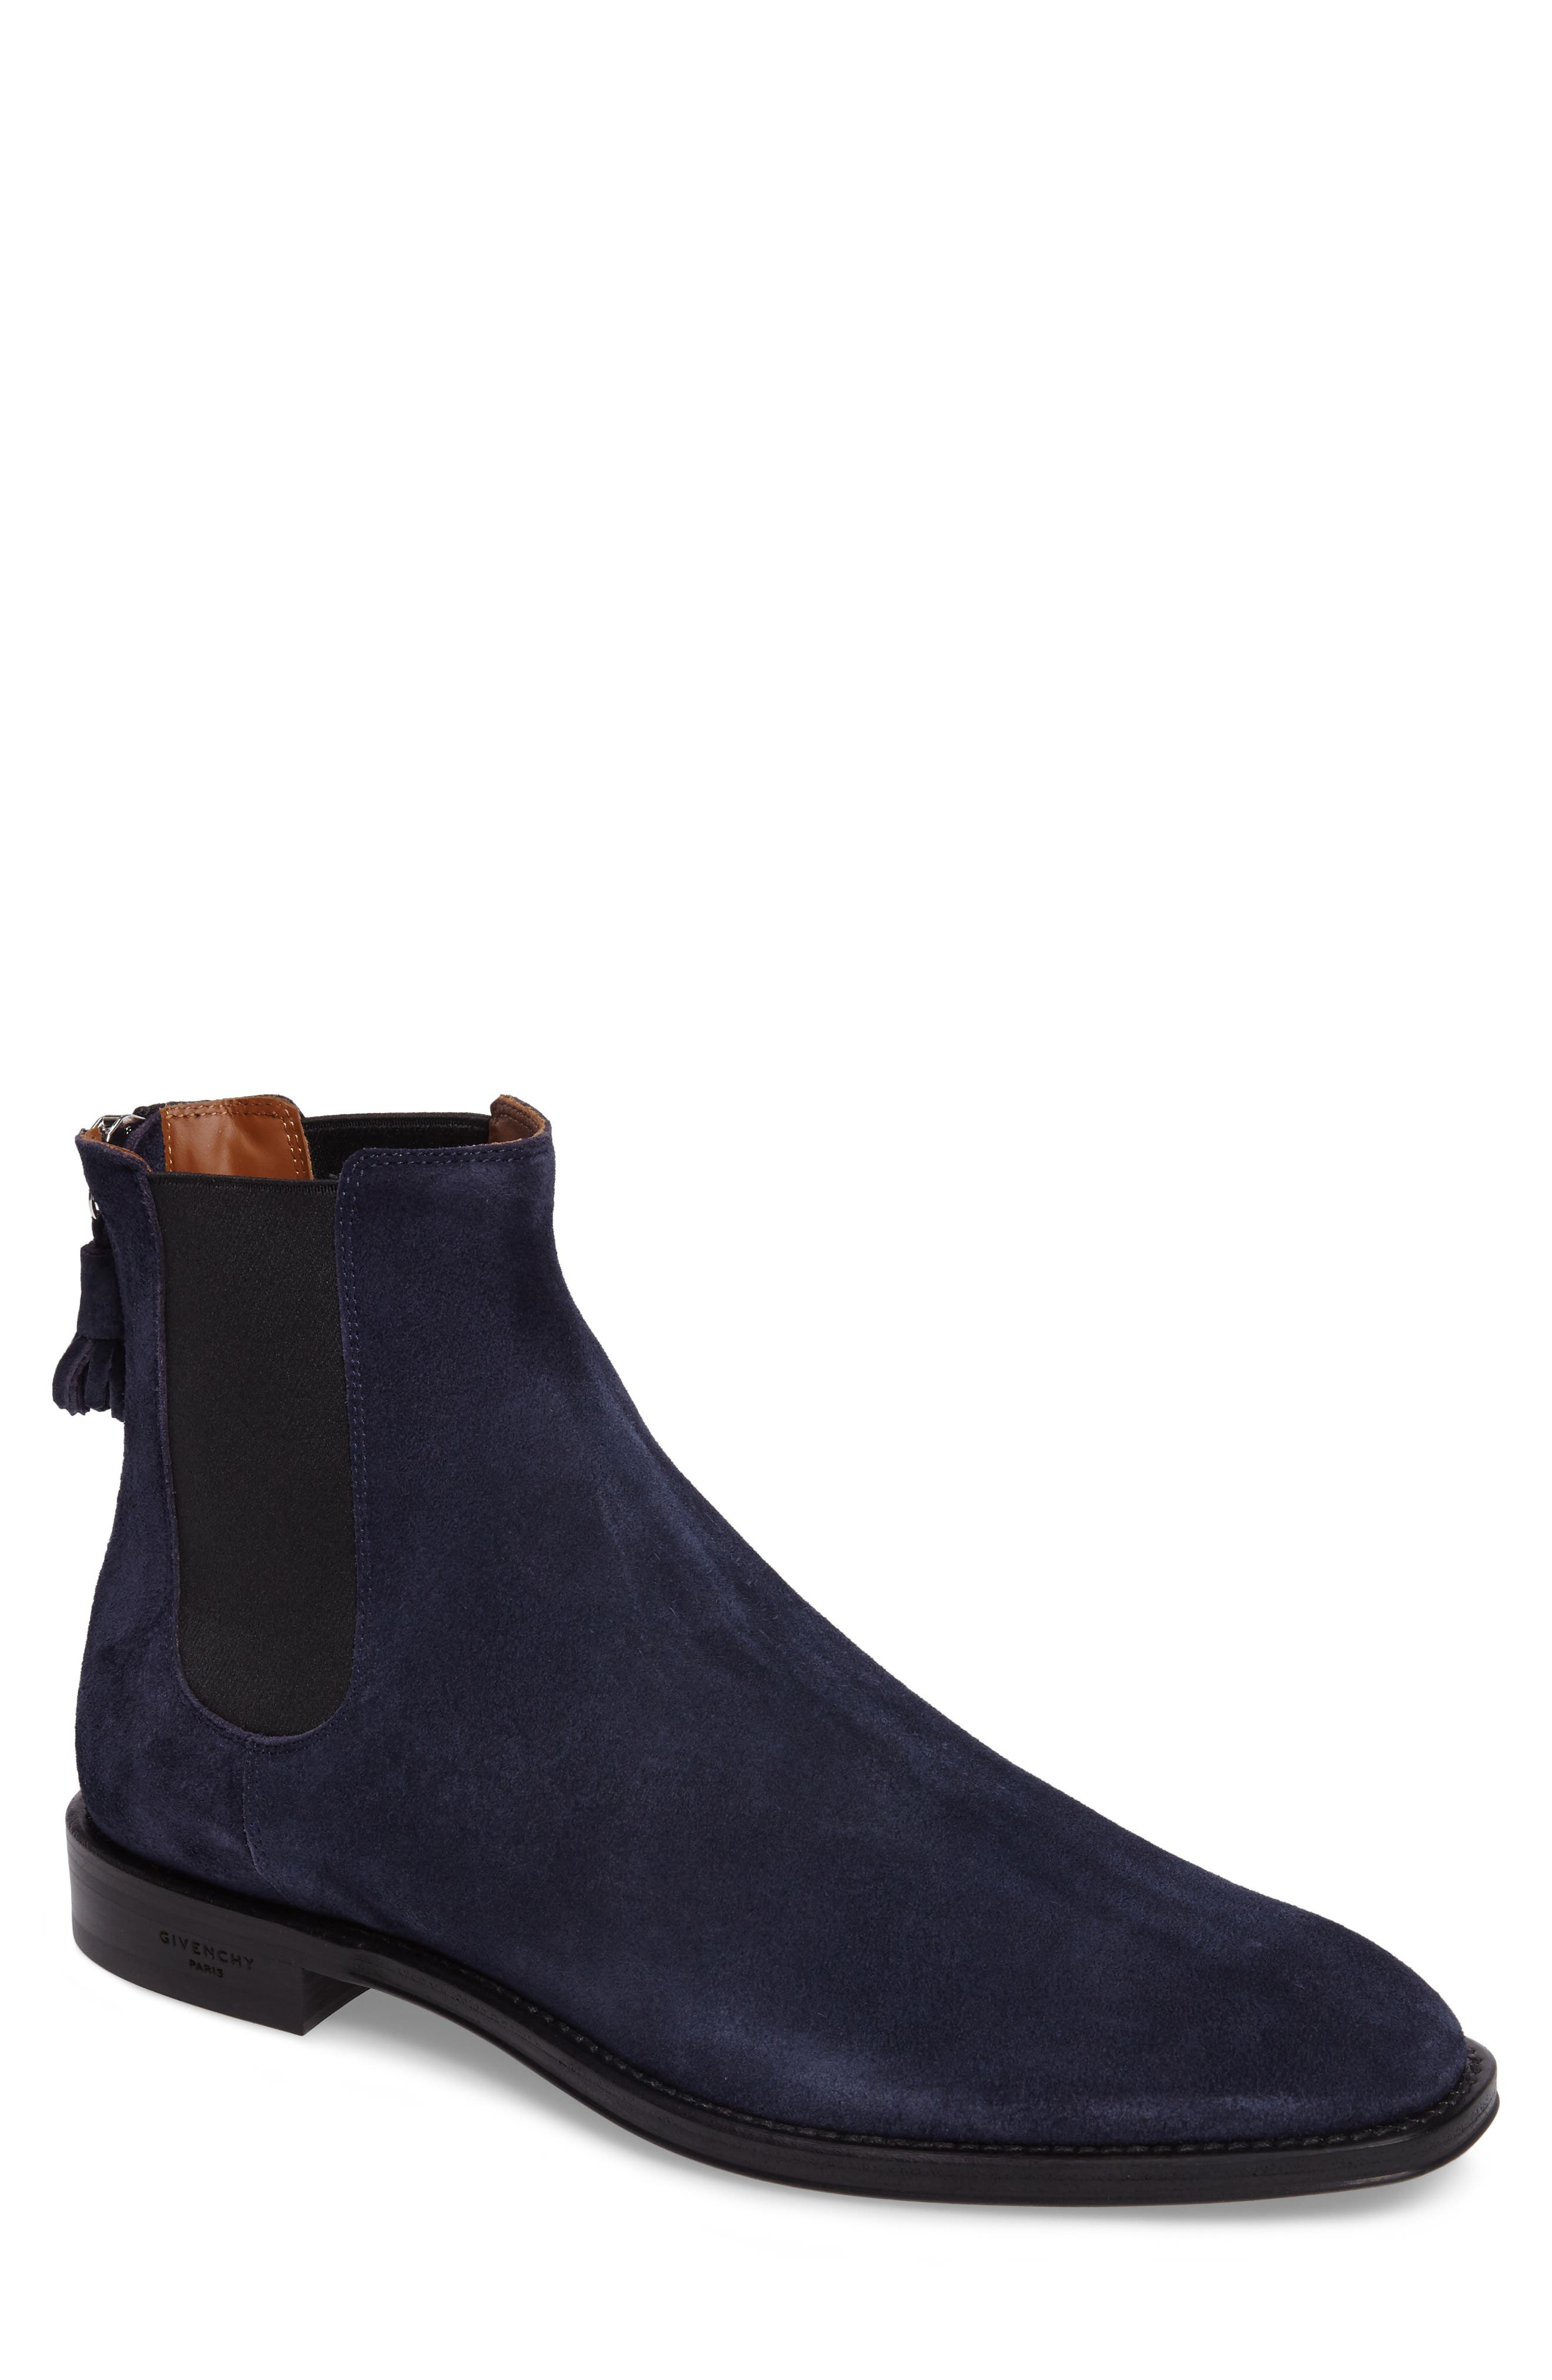 Givenchy Chelsea Boot (Men)